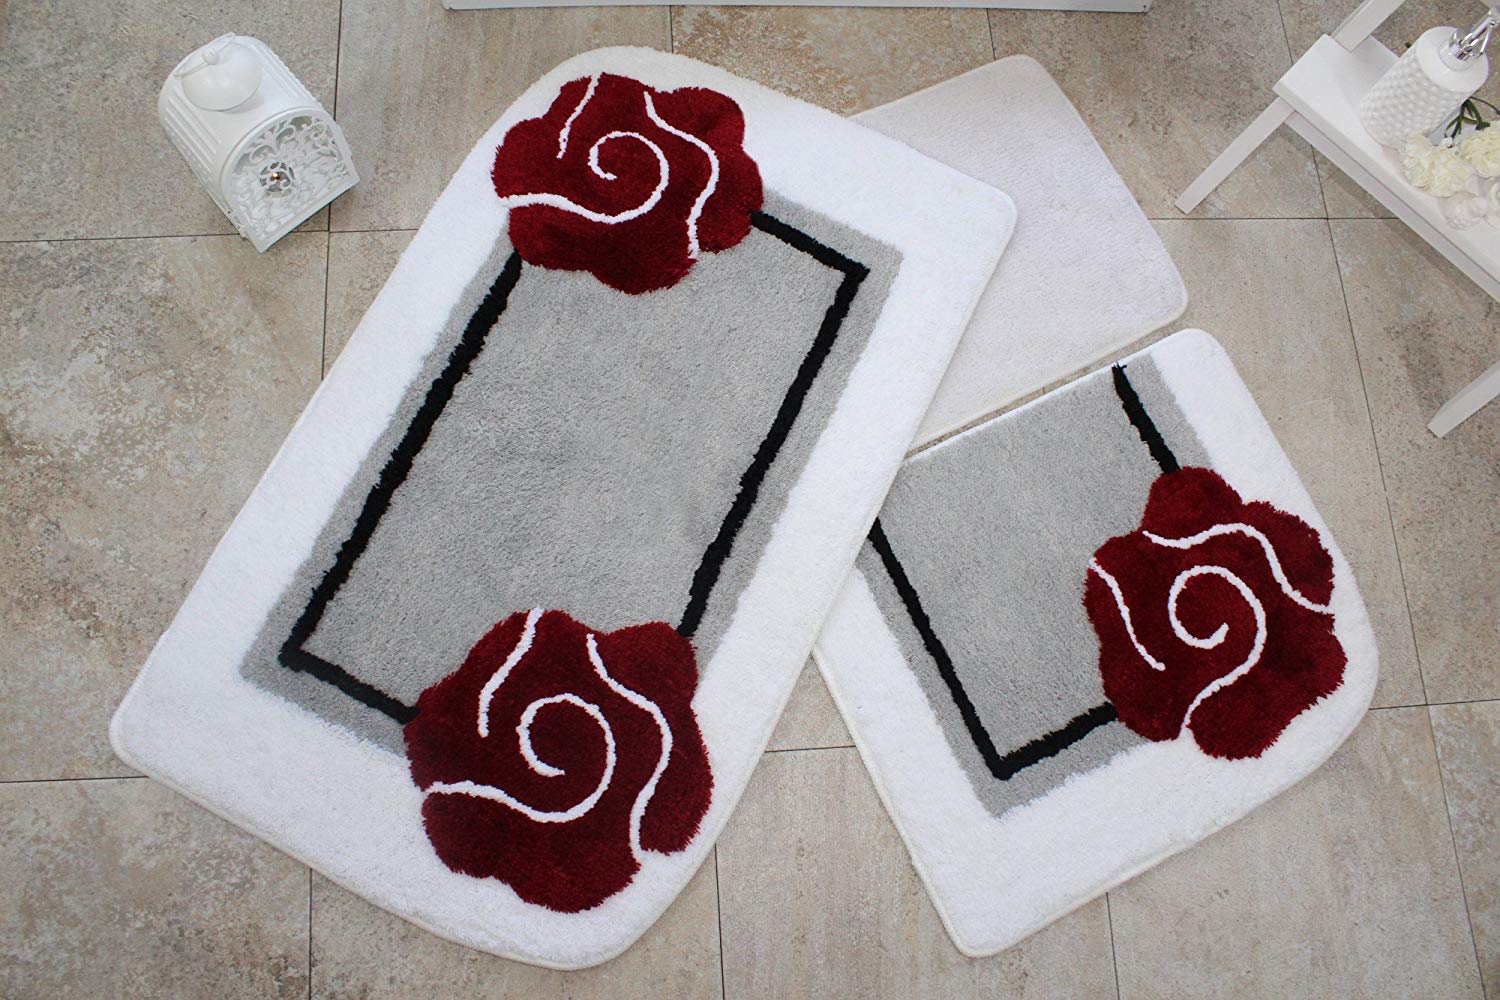 "LaModaHome 3 Pcs Bathmat/Rug Set 100% Acrylic/Antibacterial & Non-Slip Base/Machine Washable/Big Mat Size (23.6"" x 39.4"") Soft Absorbent Design Pattern Comfortable Red Flower"